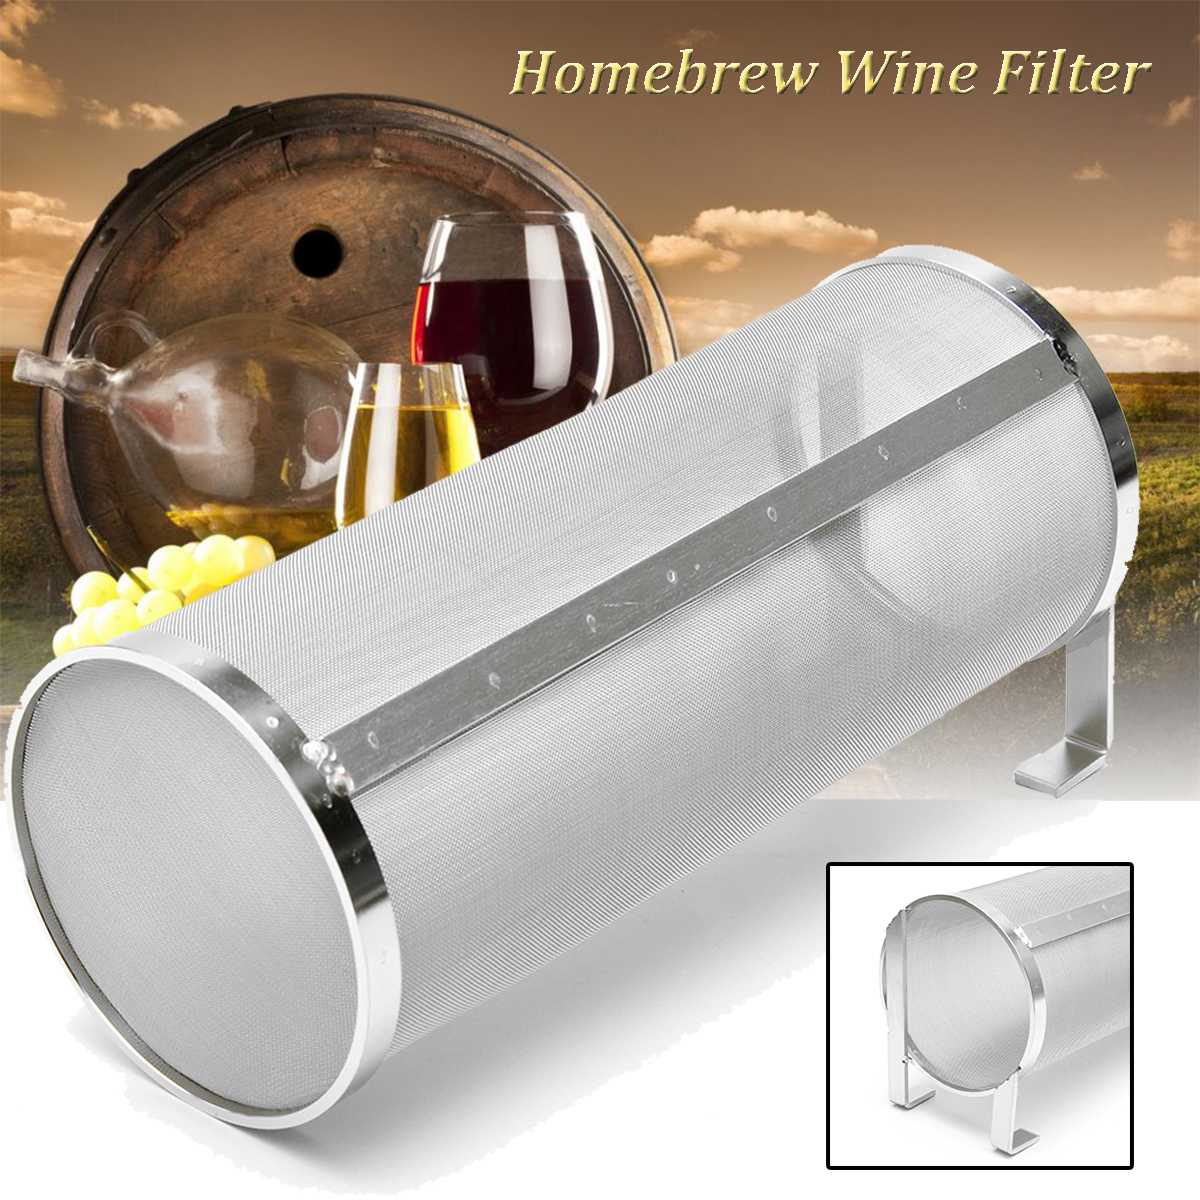 Home Brew 400 Micron Hop Spiders Mesh Beer Filter Strainer For Homemade Brew Spiders Mesh Filter|Beer Brewing| |  - title=